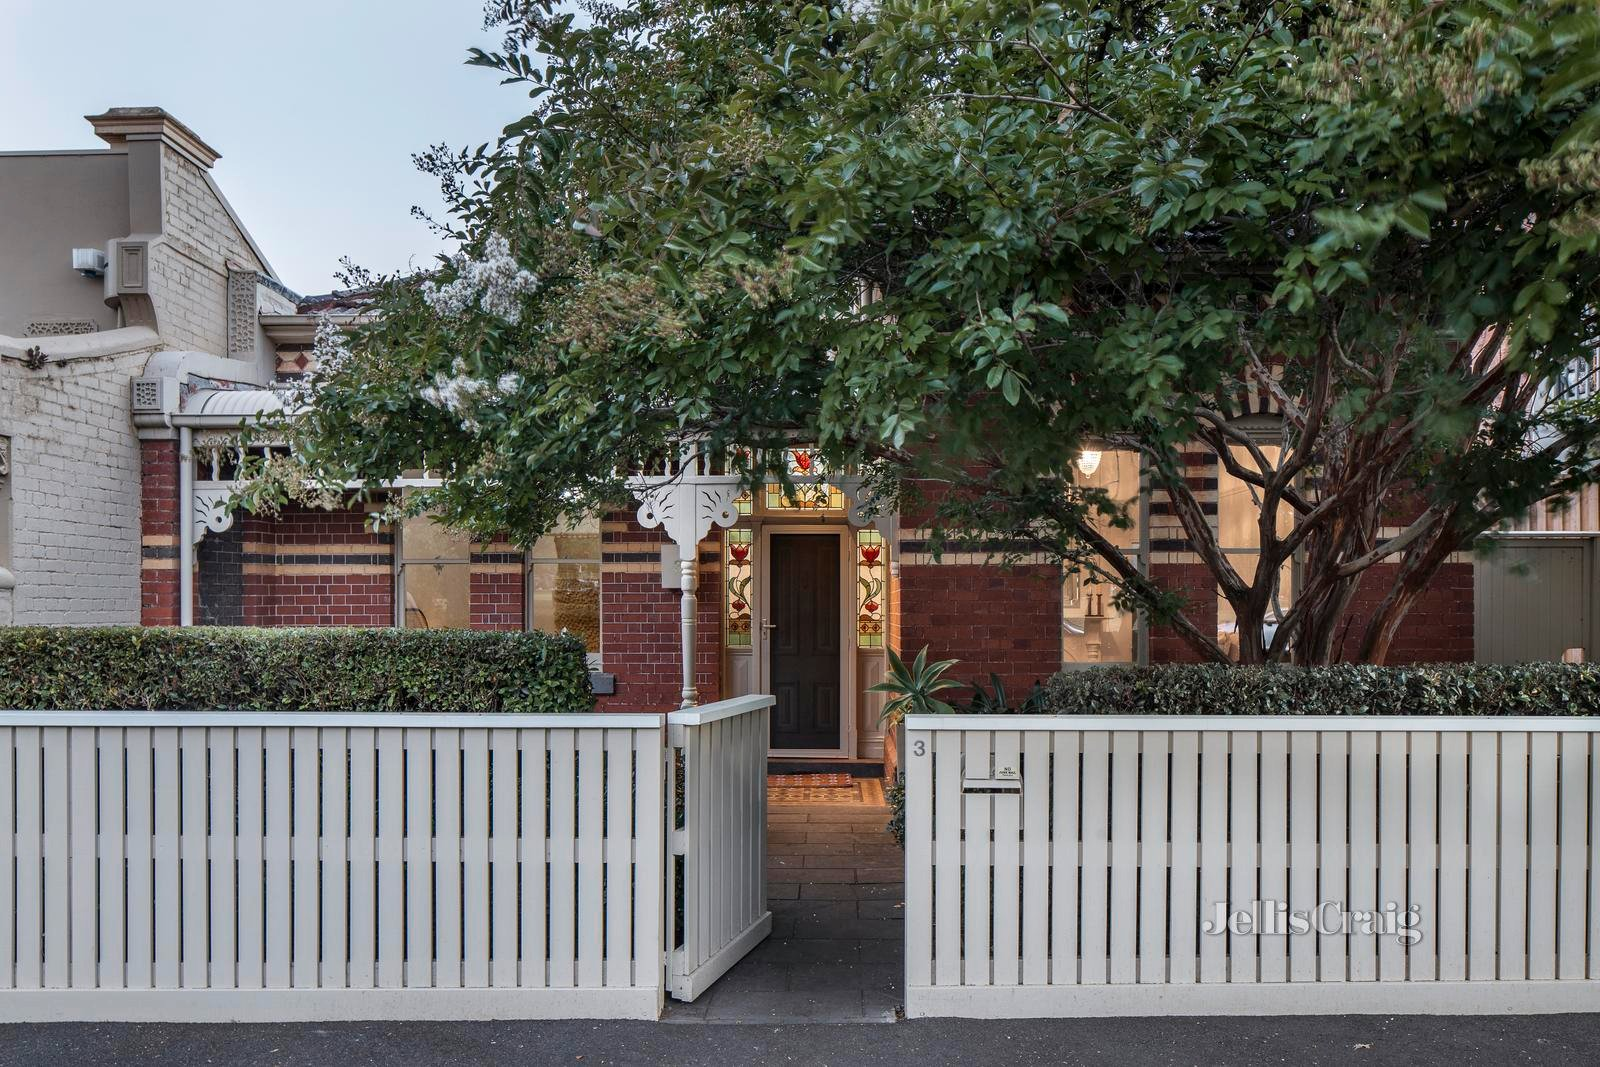 3 South Terrace, Clifton Hill - Image 1